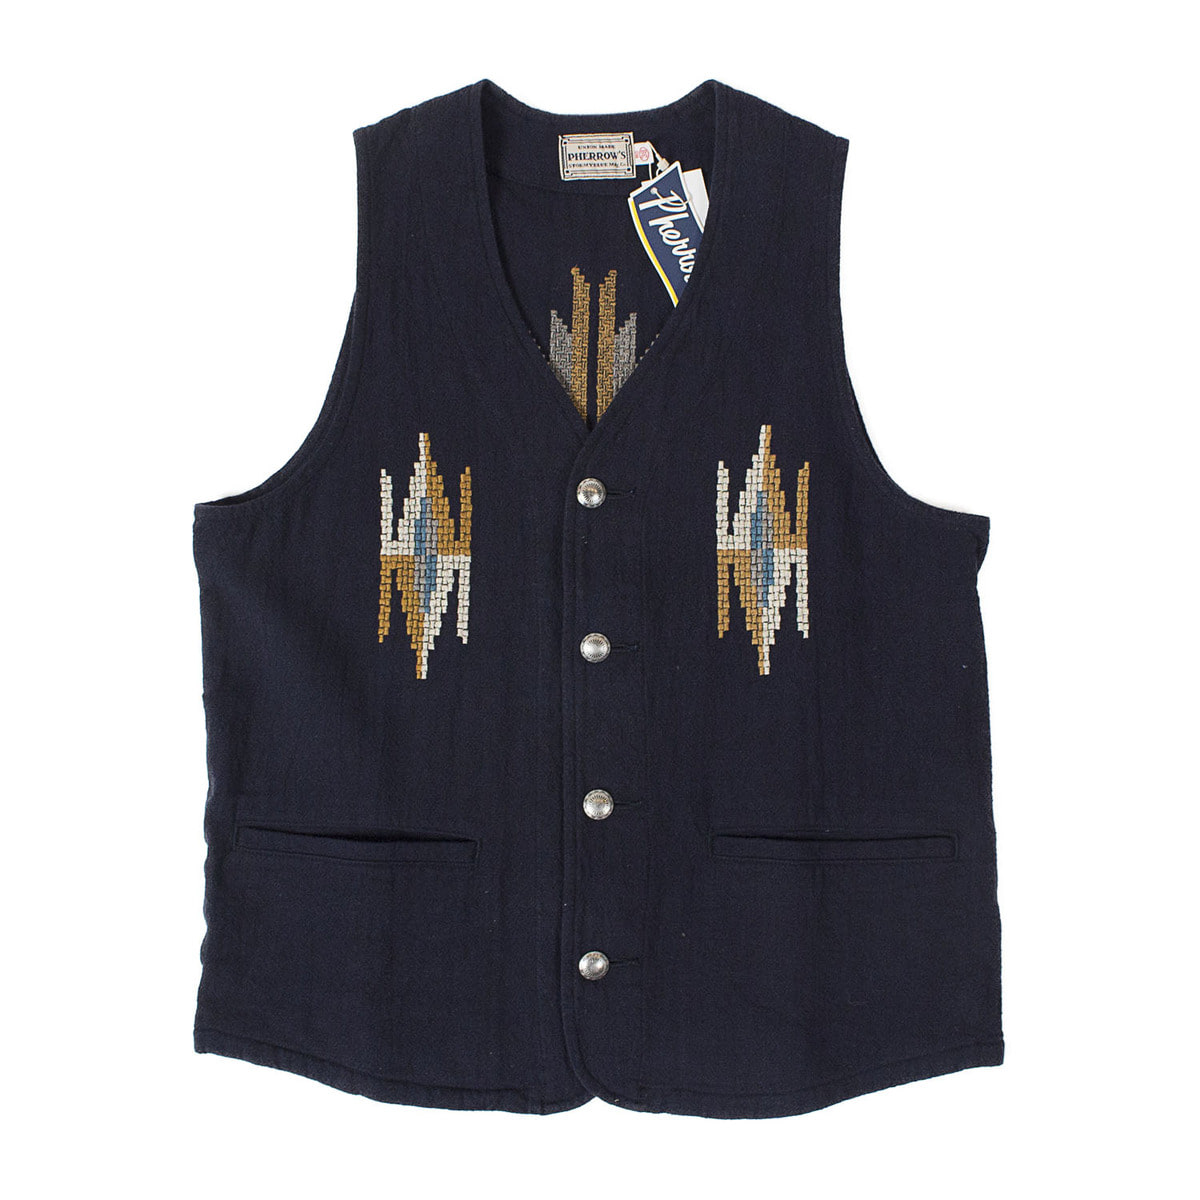 Rag Pattern Embroidery Vest (Black)